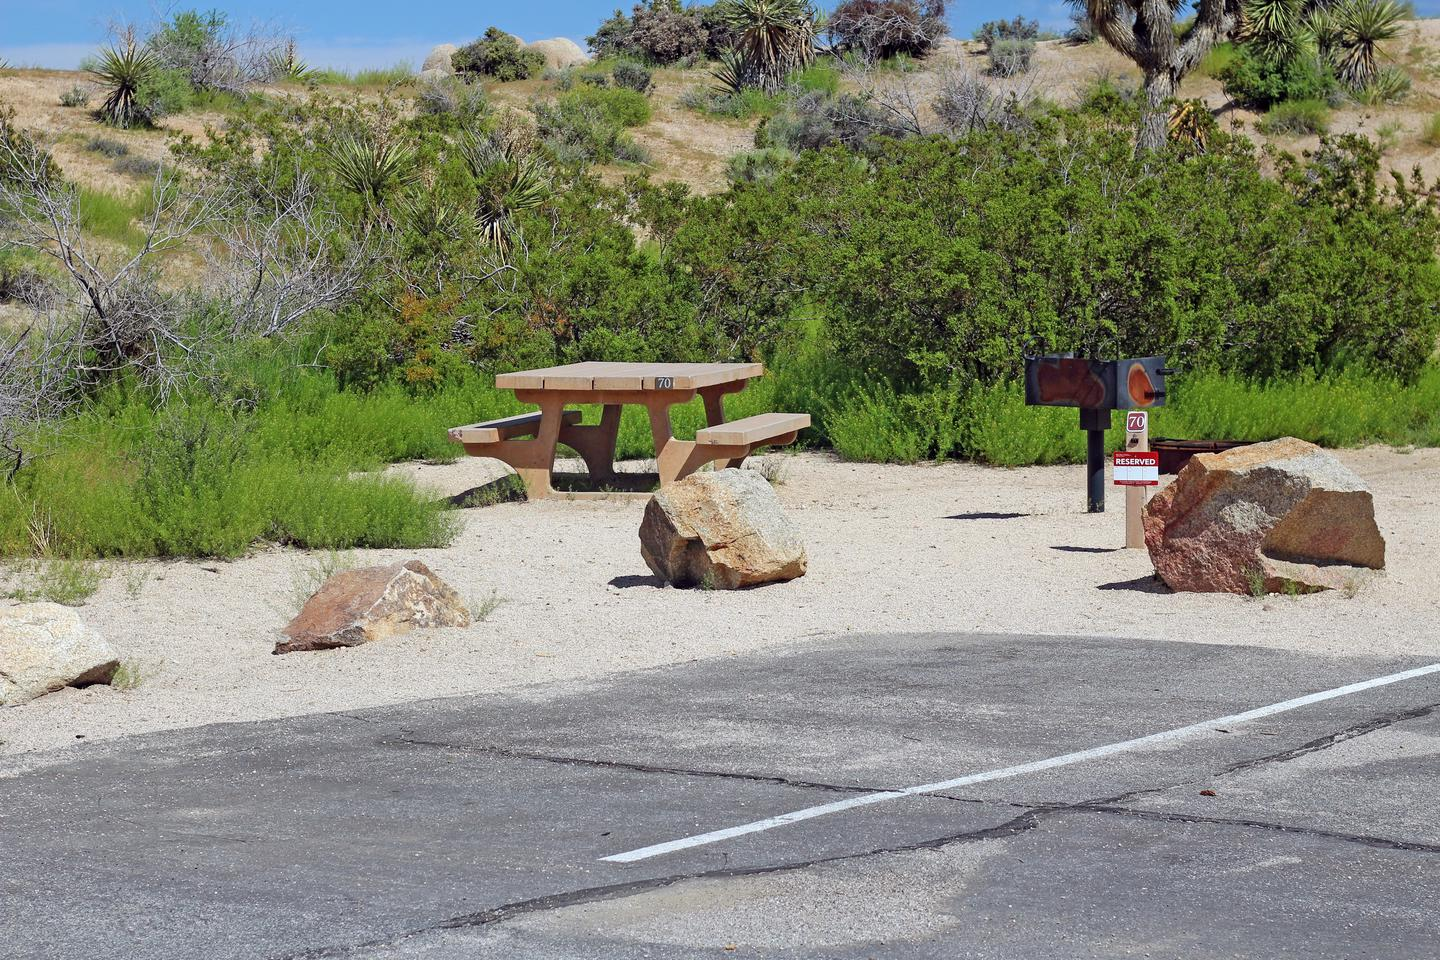 Shared parking for campsite. Picnic table surrounded by gentle rise and green plants.Shared parking and campsite.